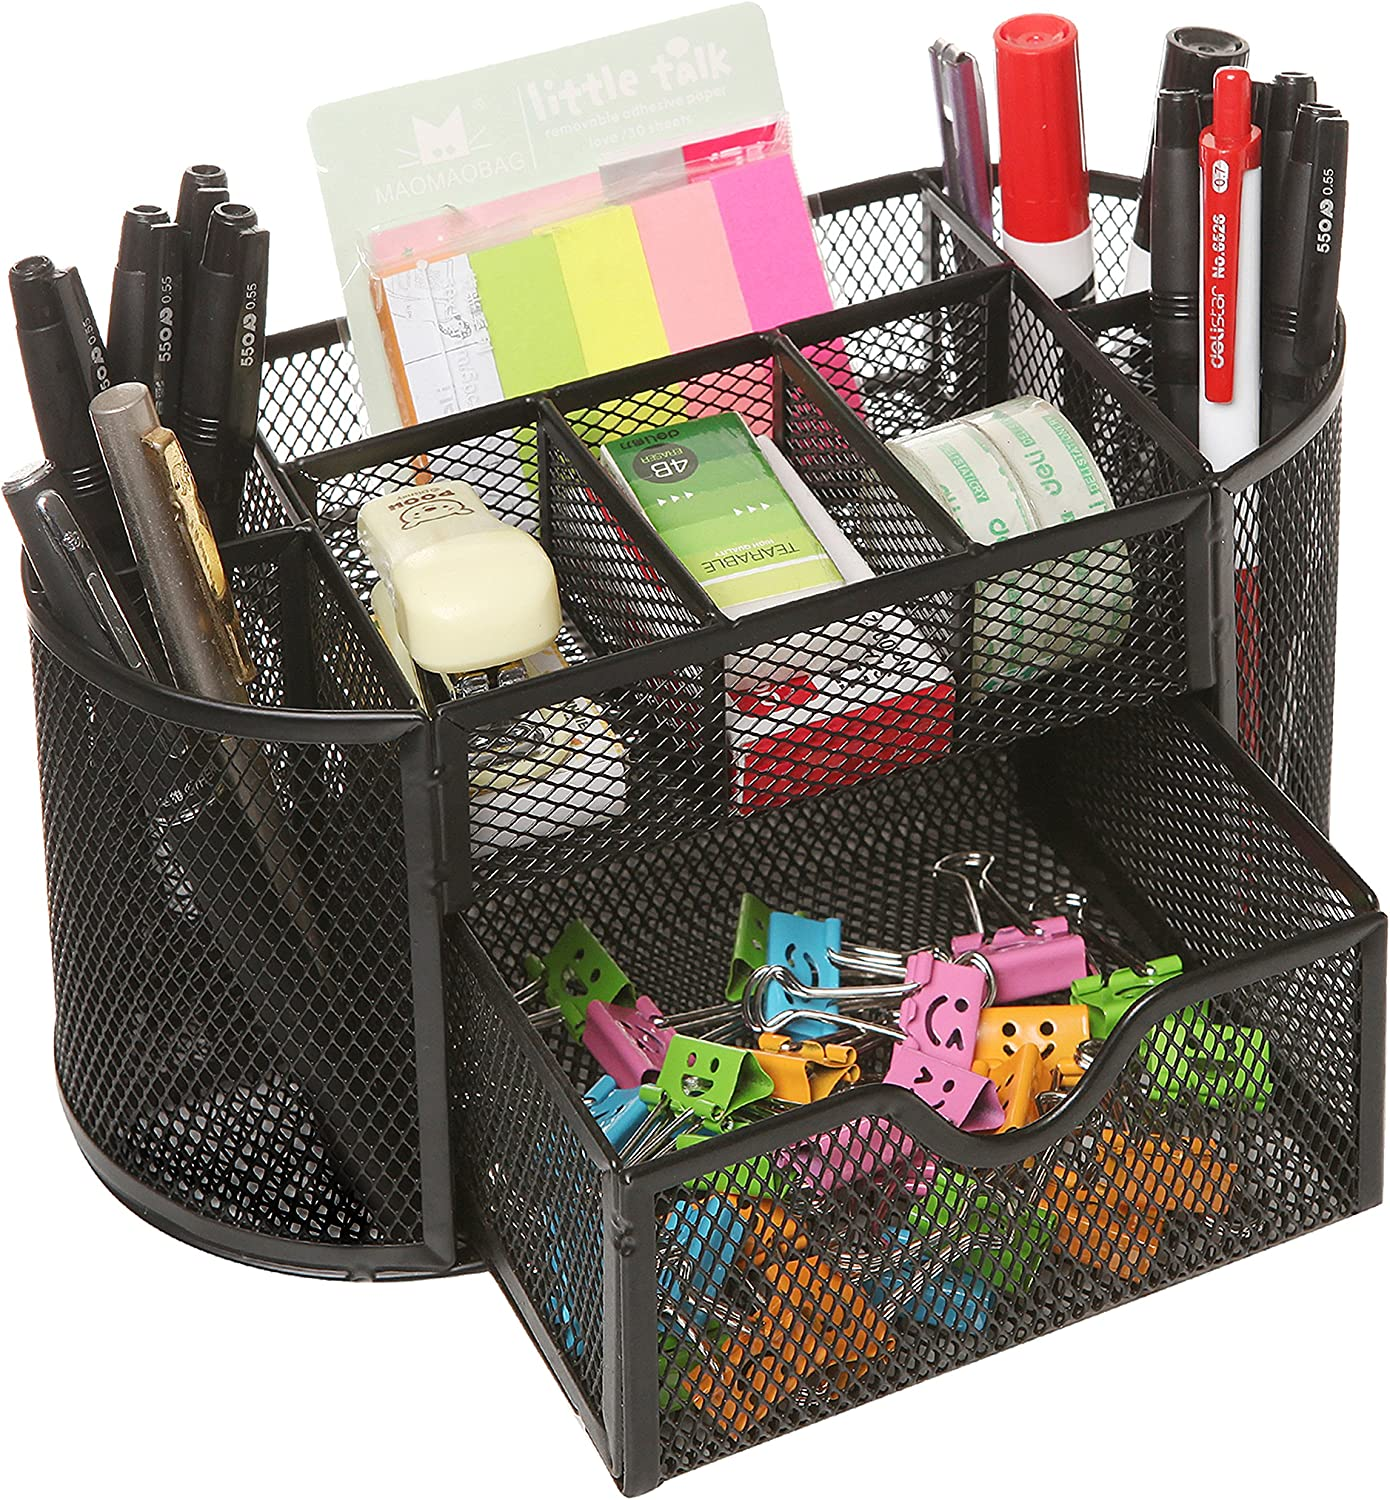 MyGift Space Saving Black Metal Wire Mesh 8 Compartment Office/School Supply Desktop Organizer Caddy w/Drawer